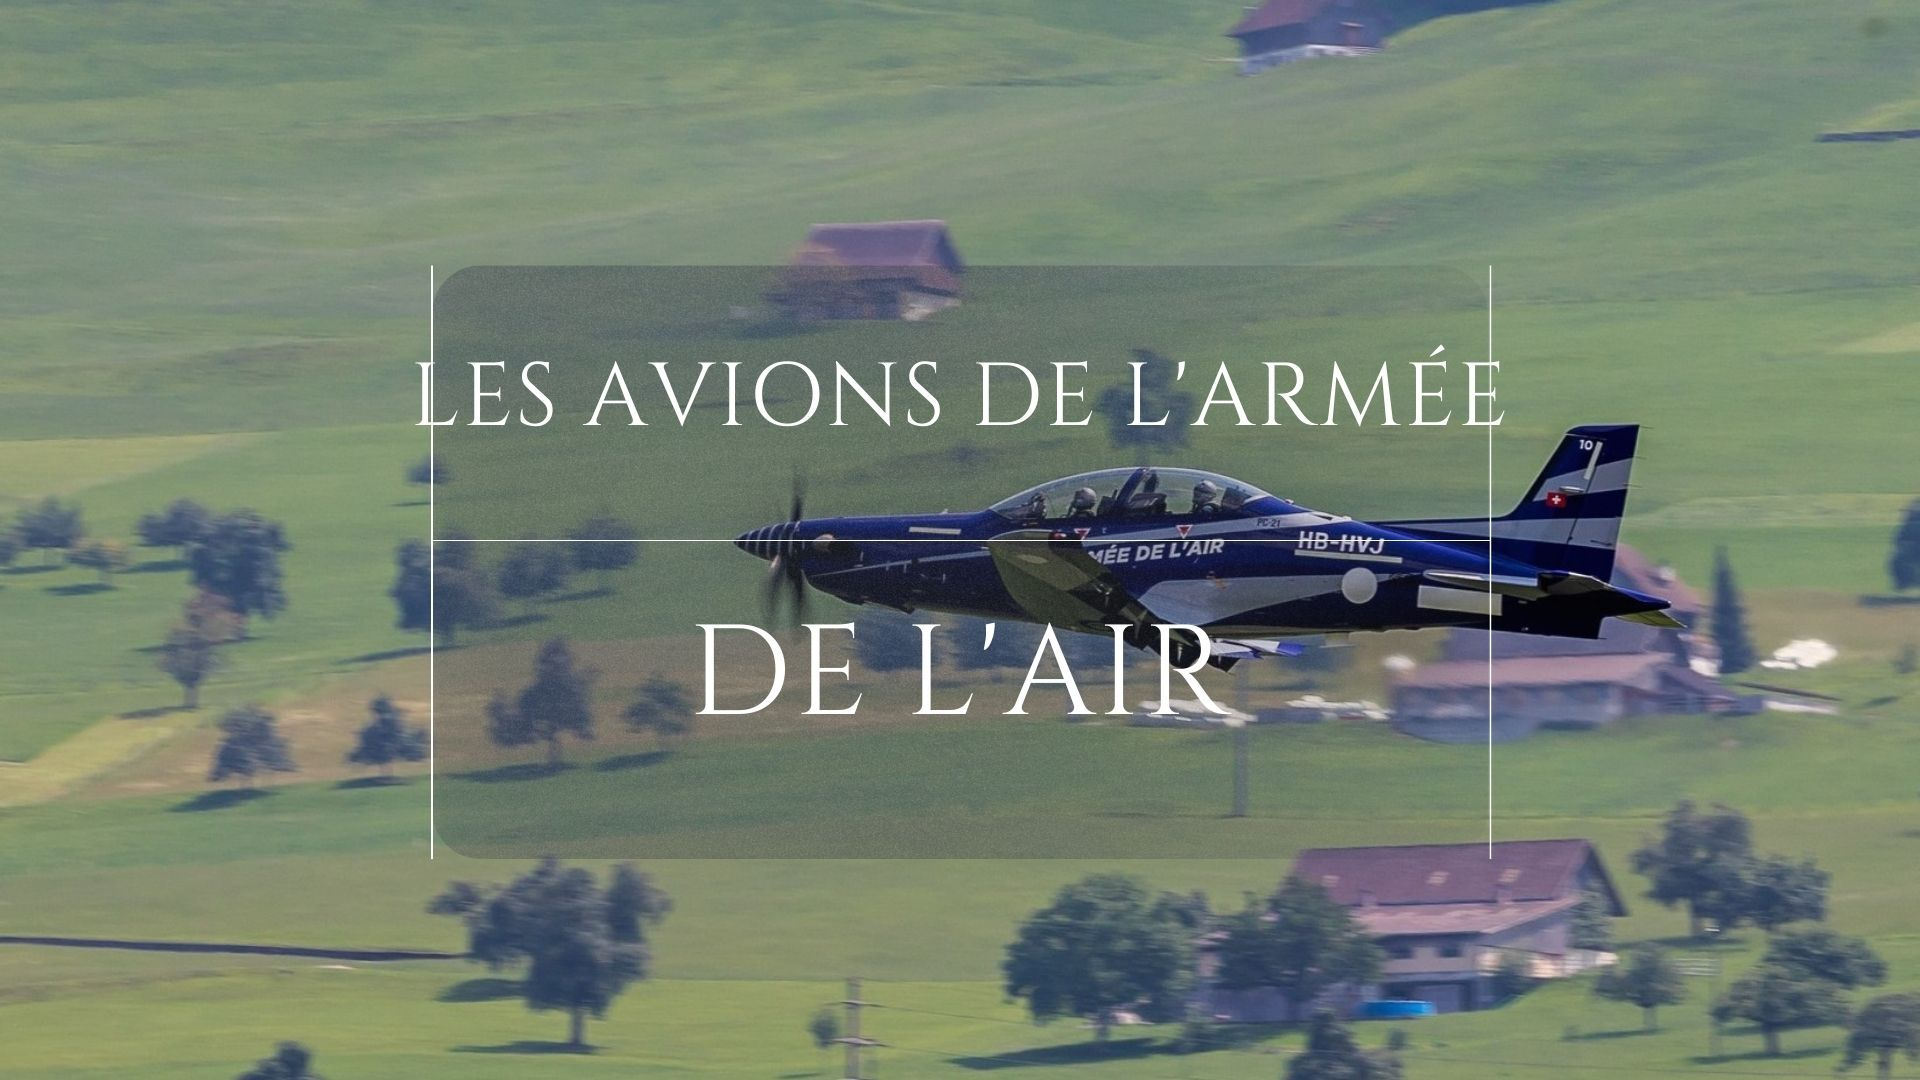 TOP 10 avion armée de l'air